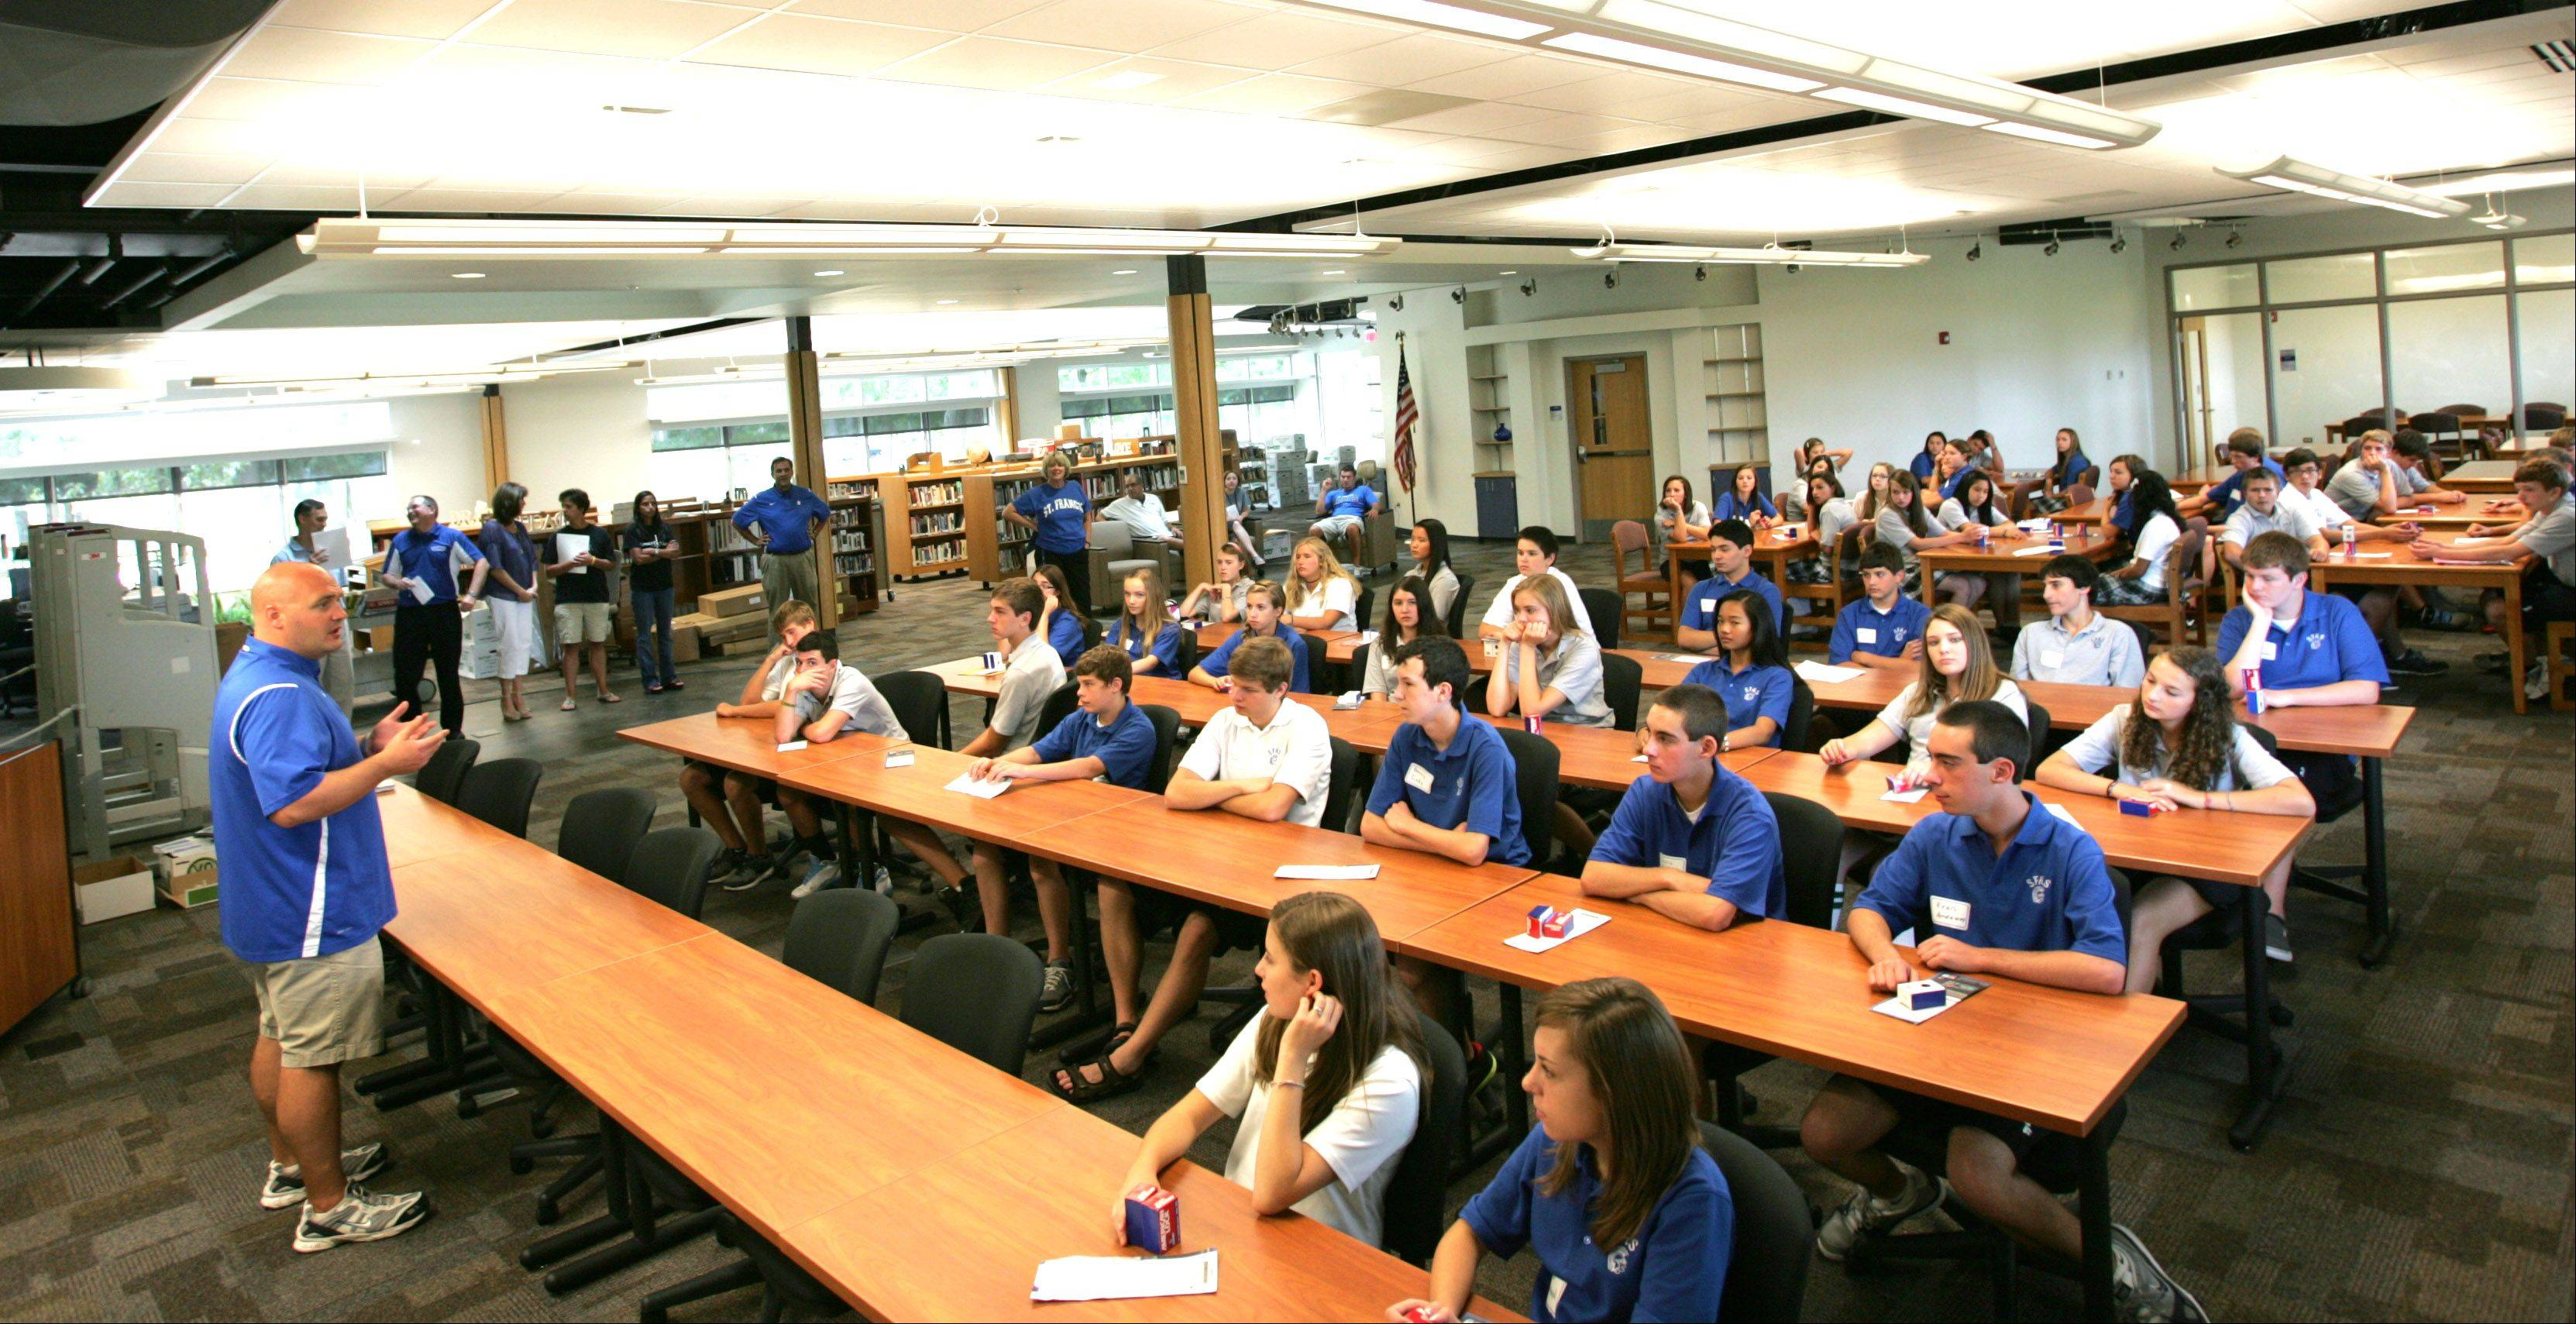 Freshmen attend an orientation session in the new resource center at Wheaton's St. Francis High School. The center and a science suite that's opening this fall are part of a $7 million addition and renovation project at the school.